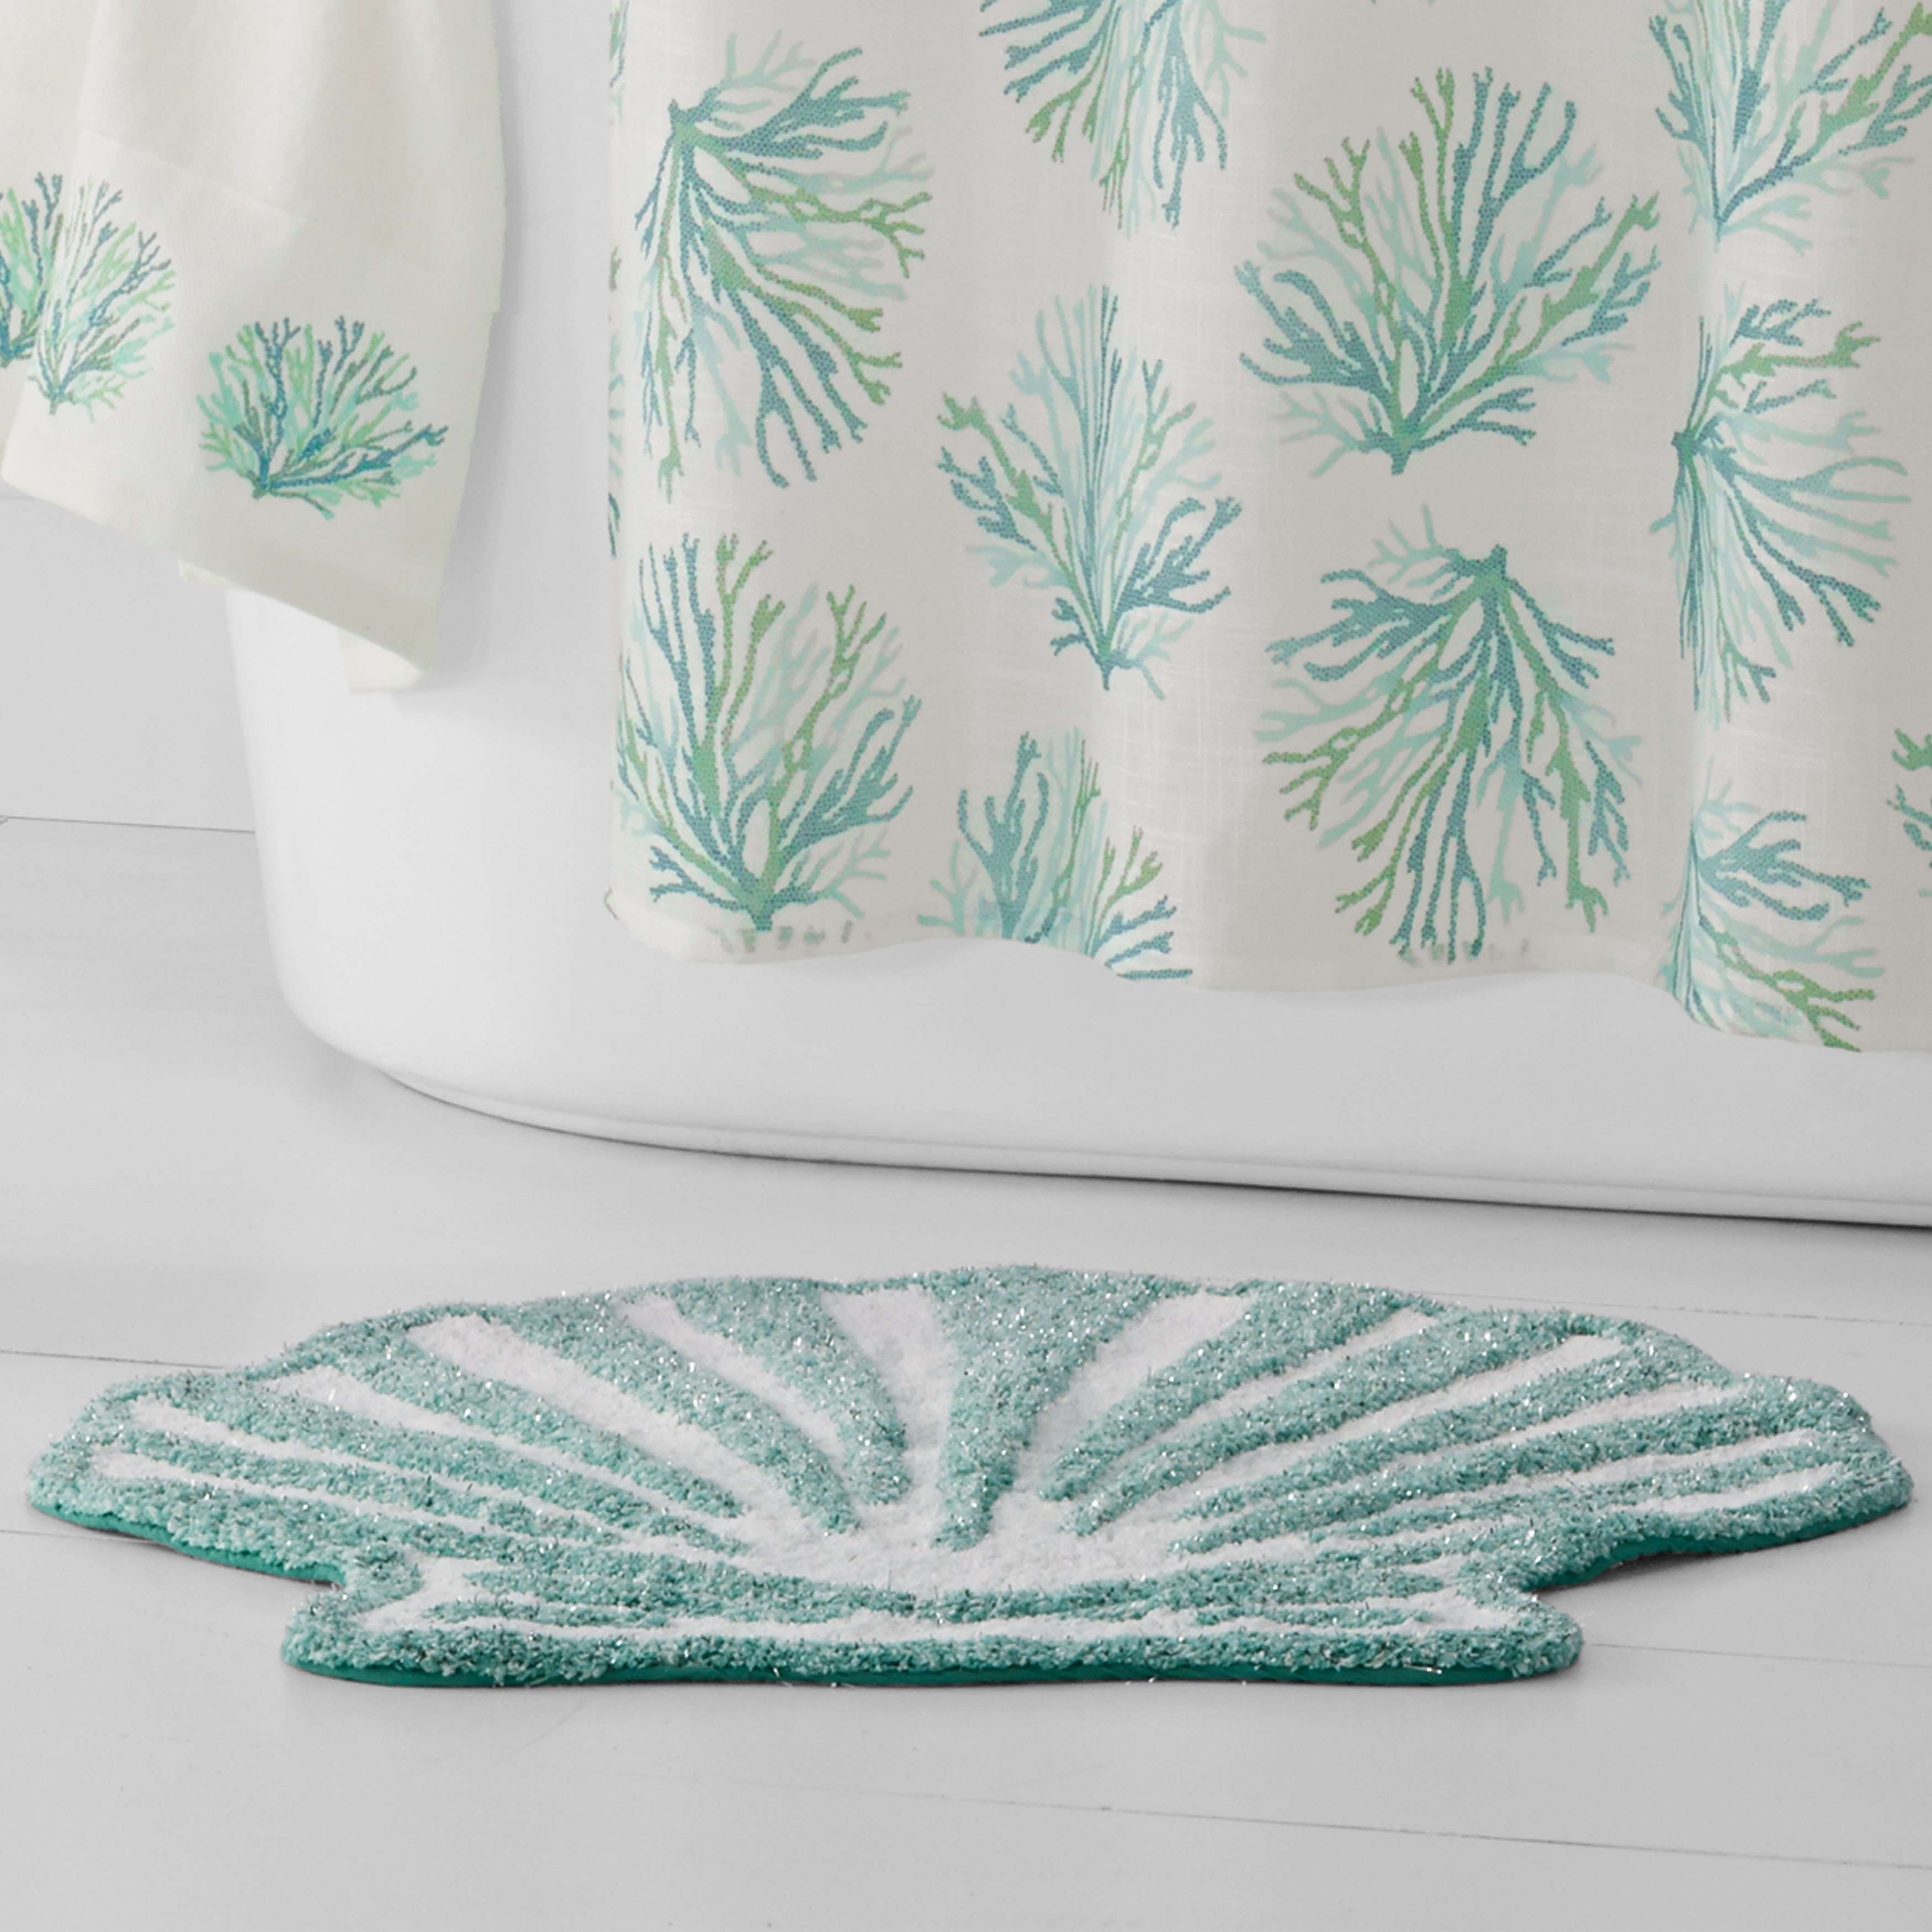 Shop Five Queens Court Caribbean Reef Seashell Shaped Cotton Bath Rug    Free Shipping On Orders Over $45   Overstock.com   20553524